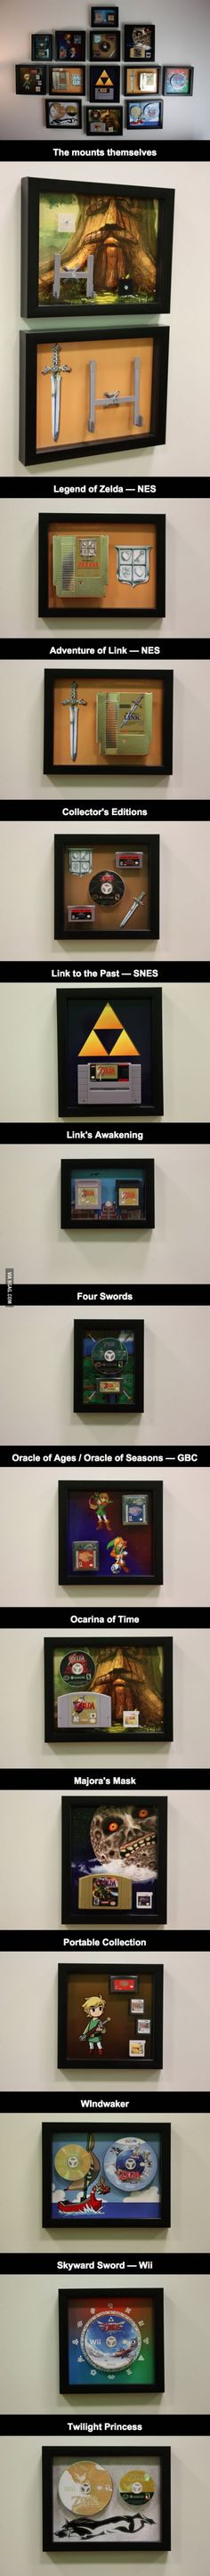 The entire Zelda series, mounted on the wall using custom 3d printed cartridge mounts